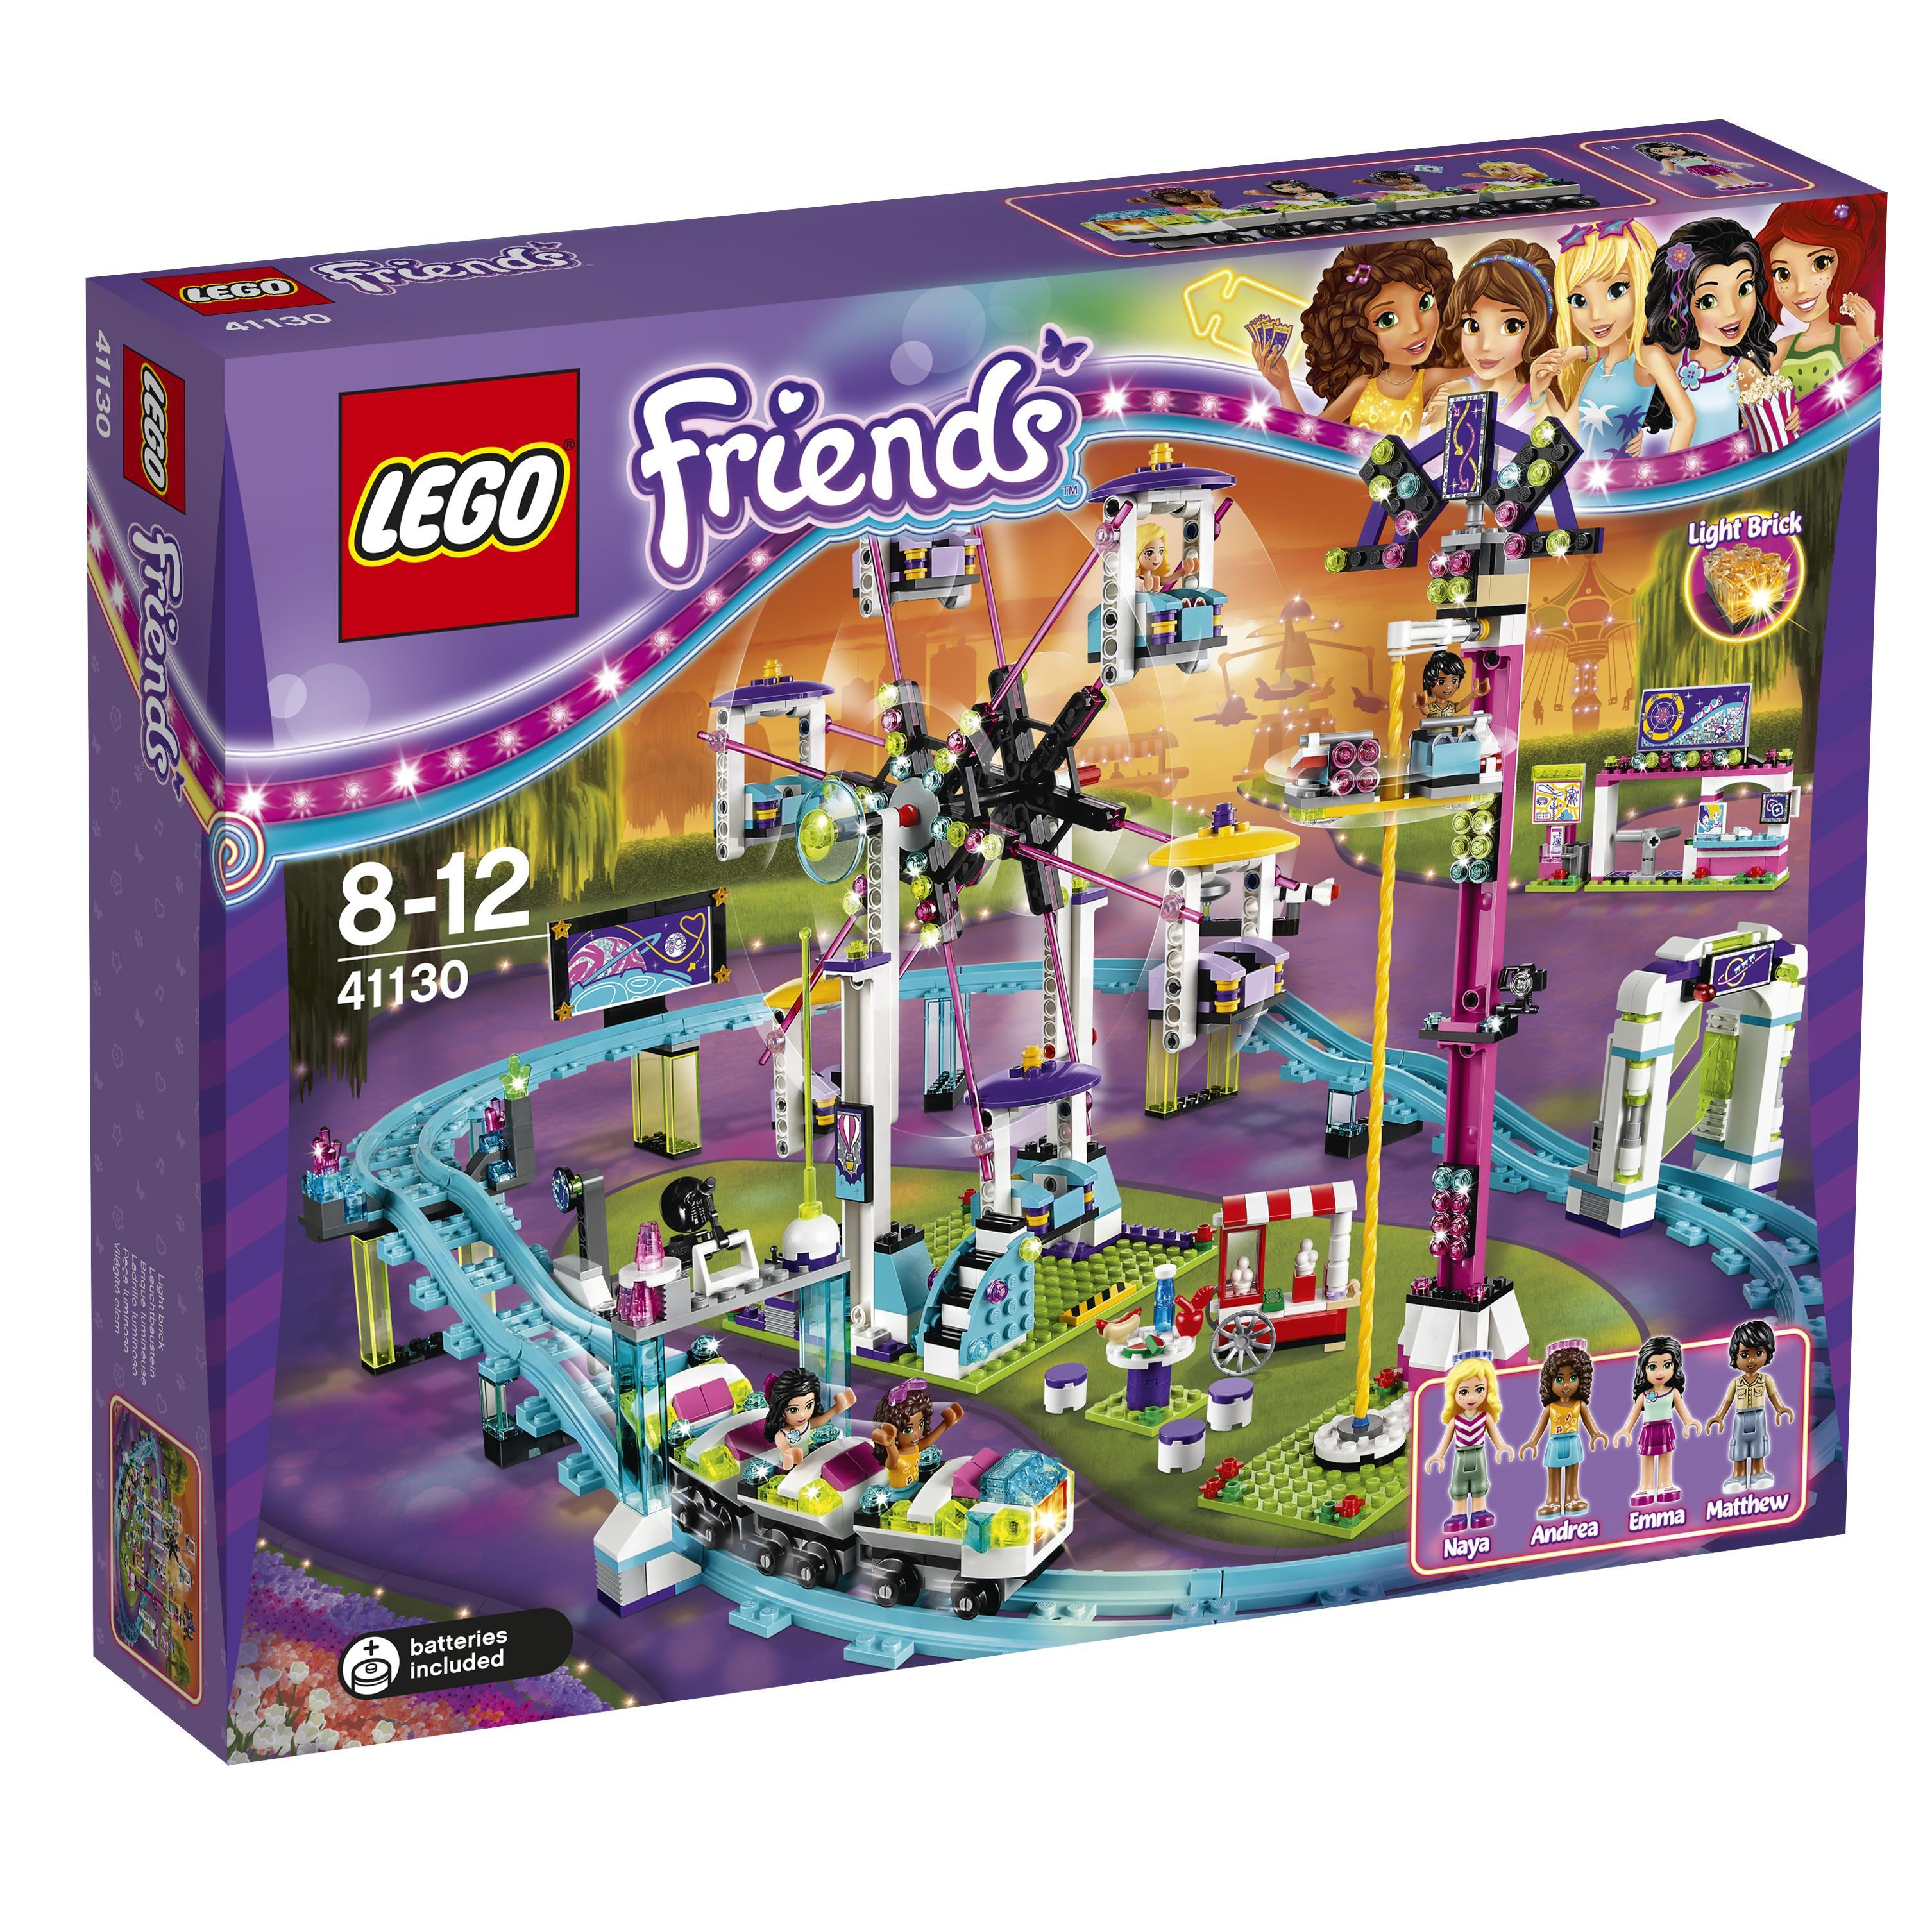 Lego Friends Amusement Park Roller Coaster (41130)